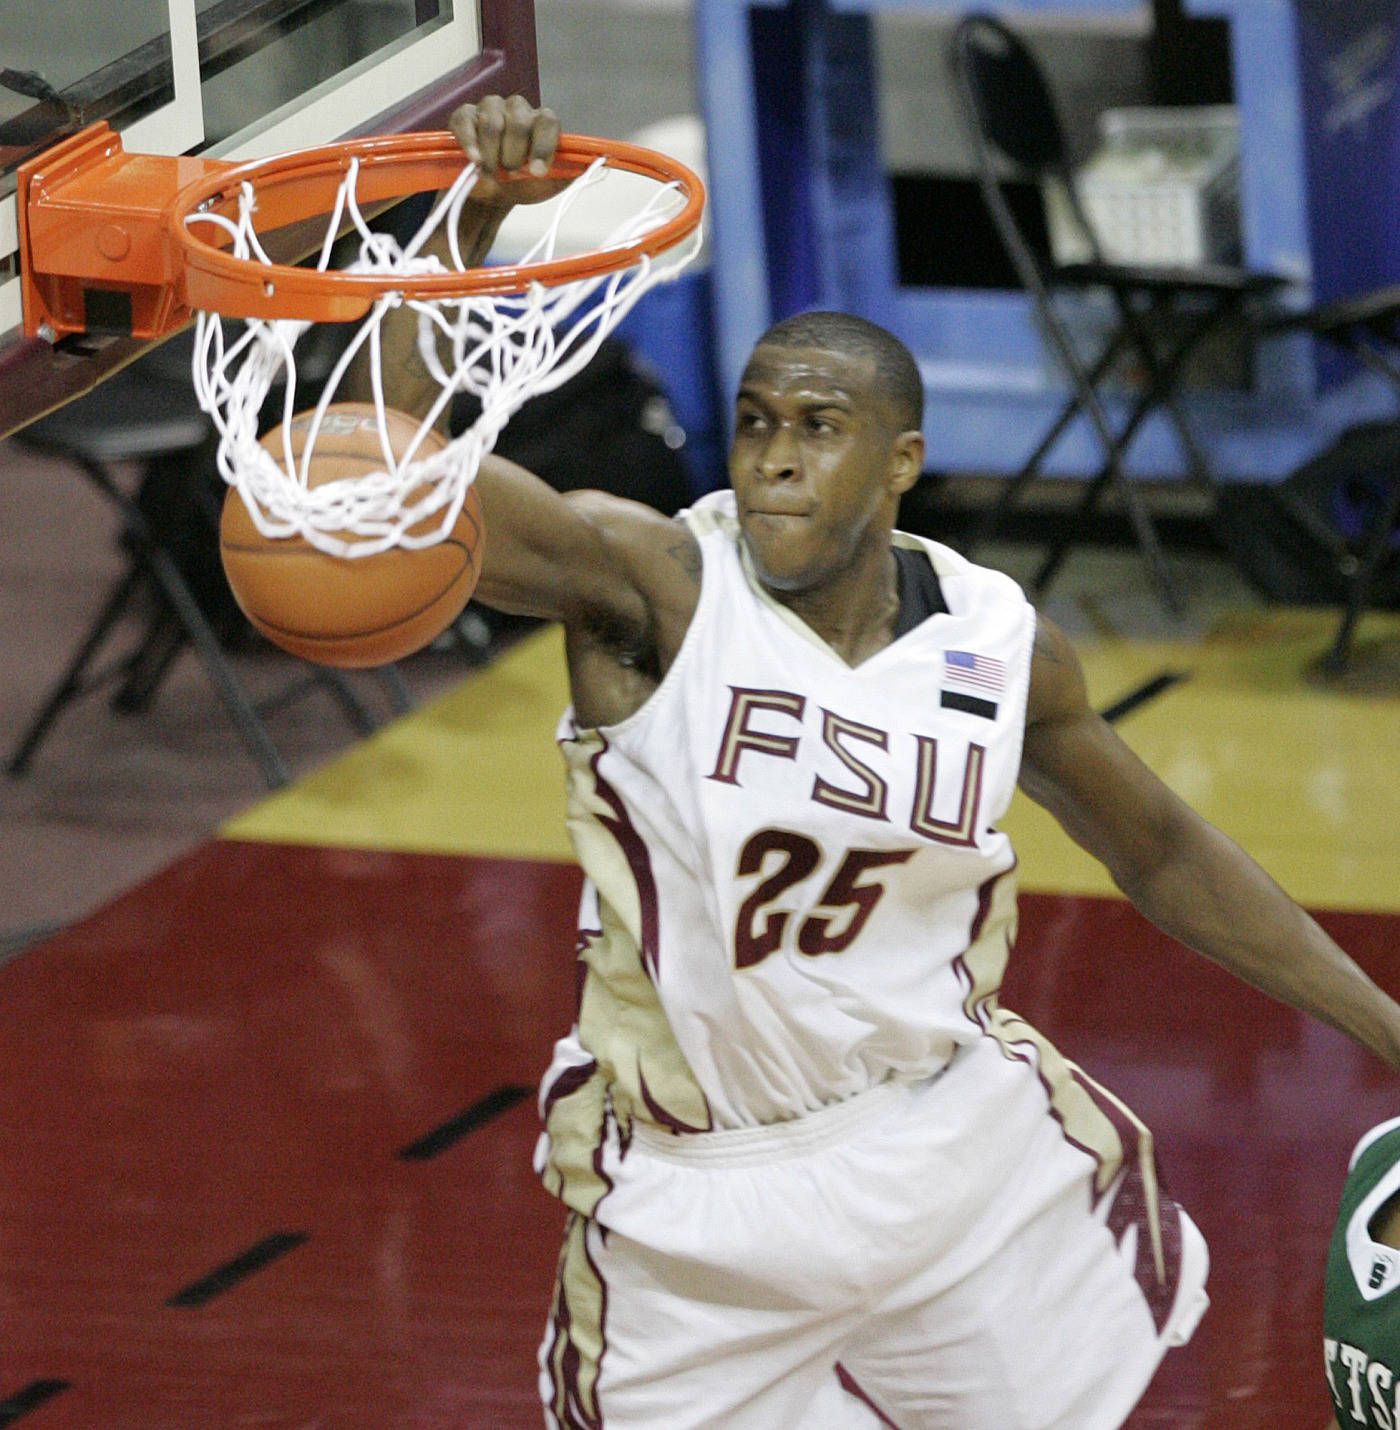 Florida State's Jason Rich dunks on a break away steal against Stetson in the first half of a college basketball game on Friday Nov. 30, 2007 in Tallahassee, Fla. (AP Photo/Steve Cannon)